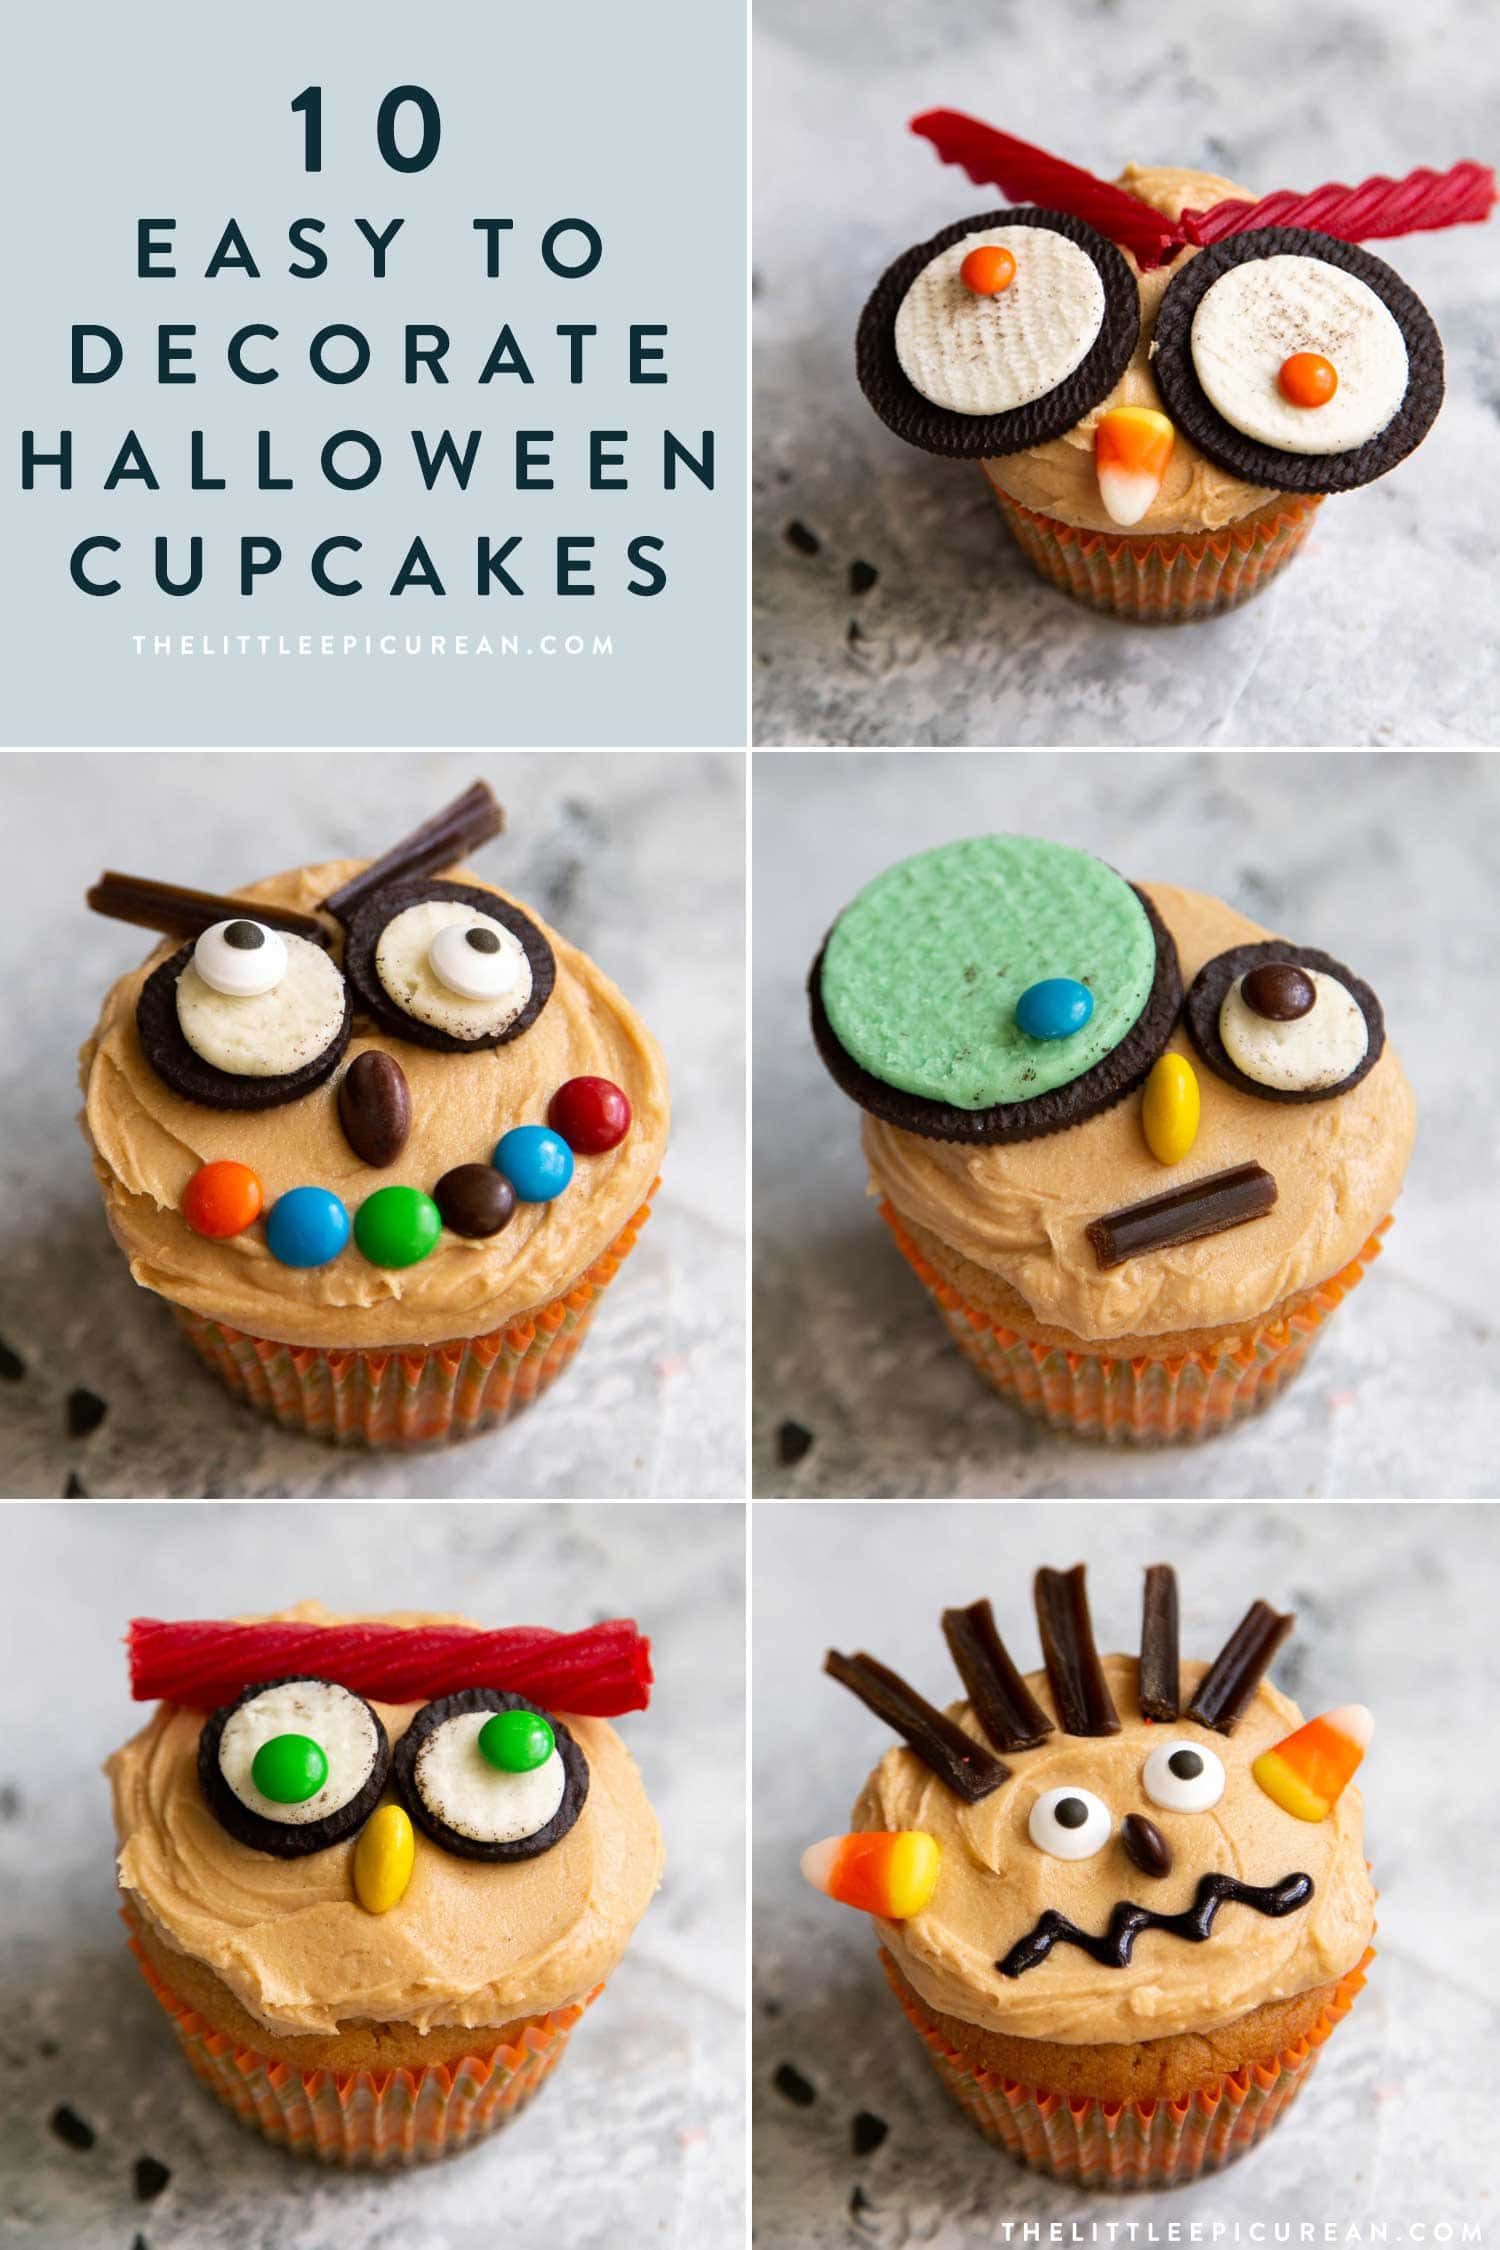 10 Easy to Decorate Halloween Cupcakes. Use your favorite cupcake and frosting recipe. Then, decorate Halloween cupcakes using a handful of store-bought candies.